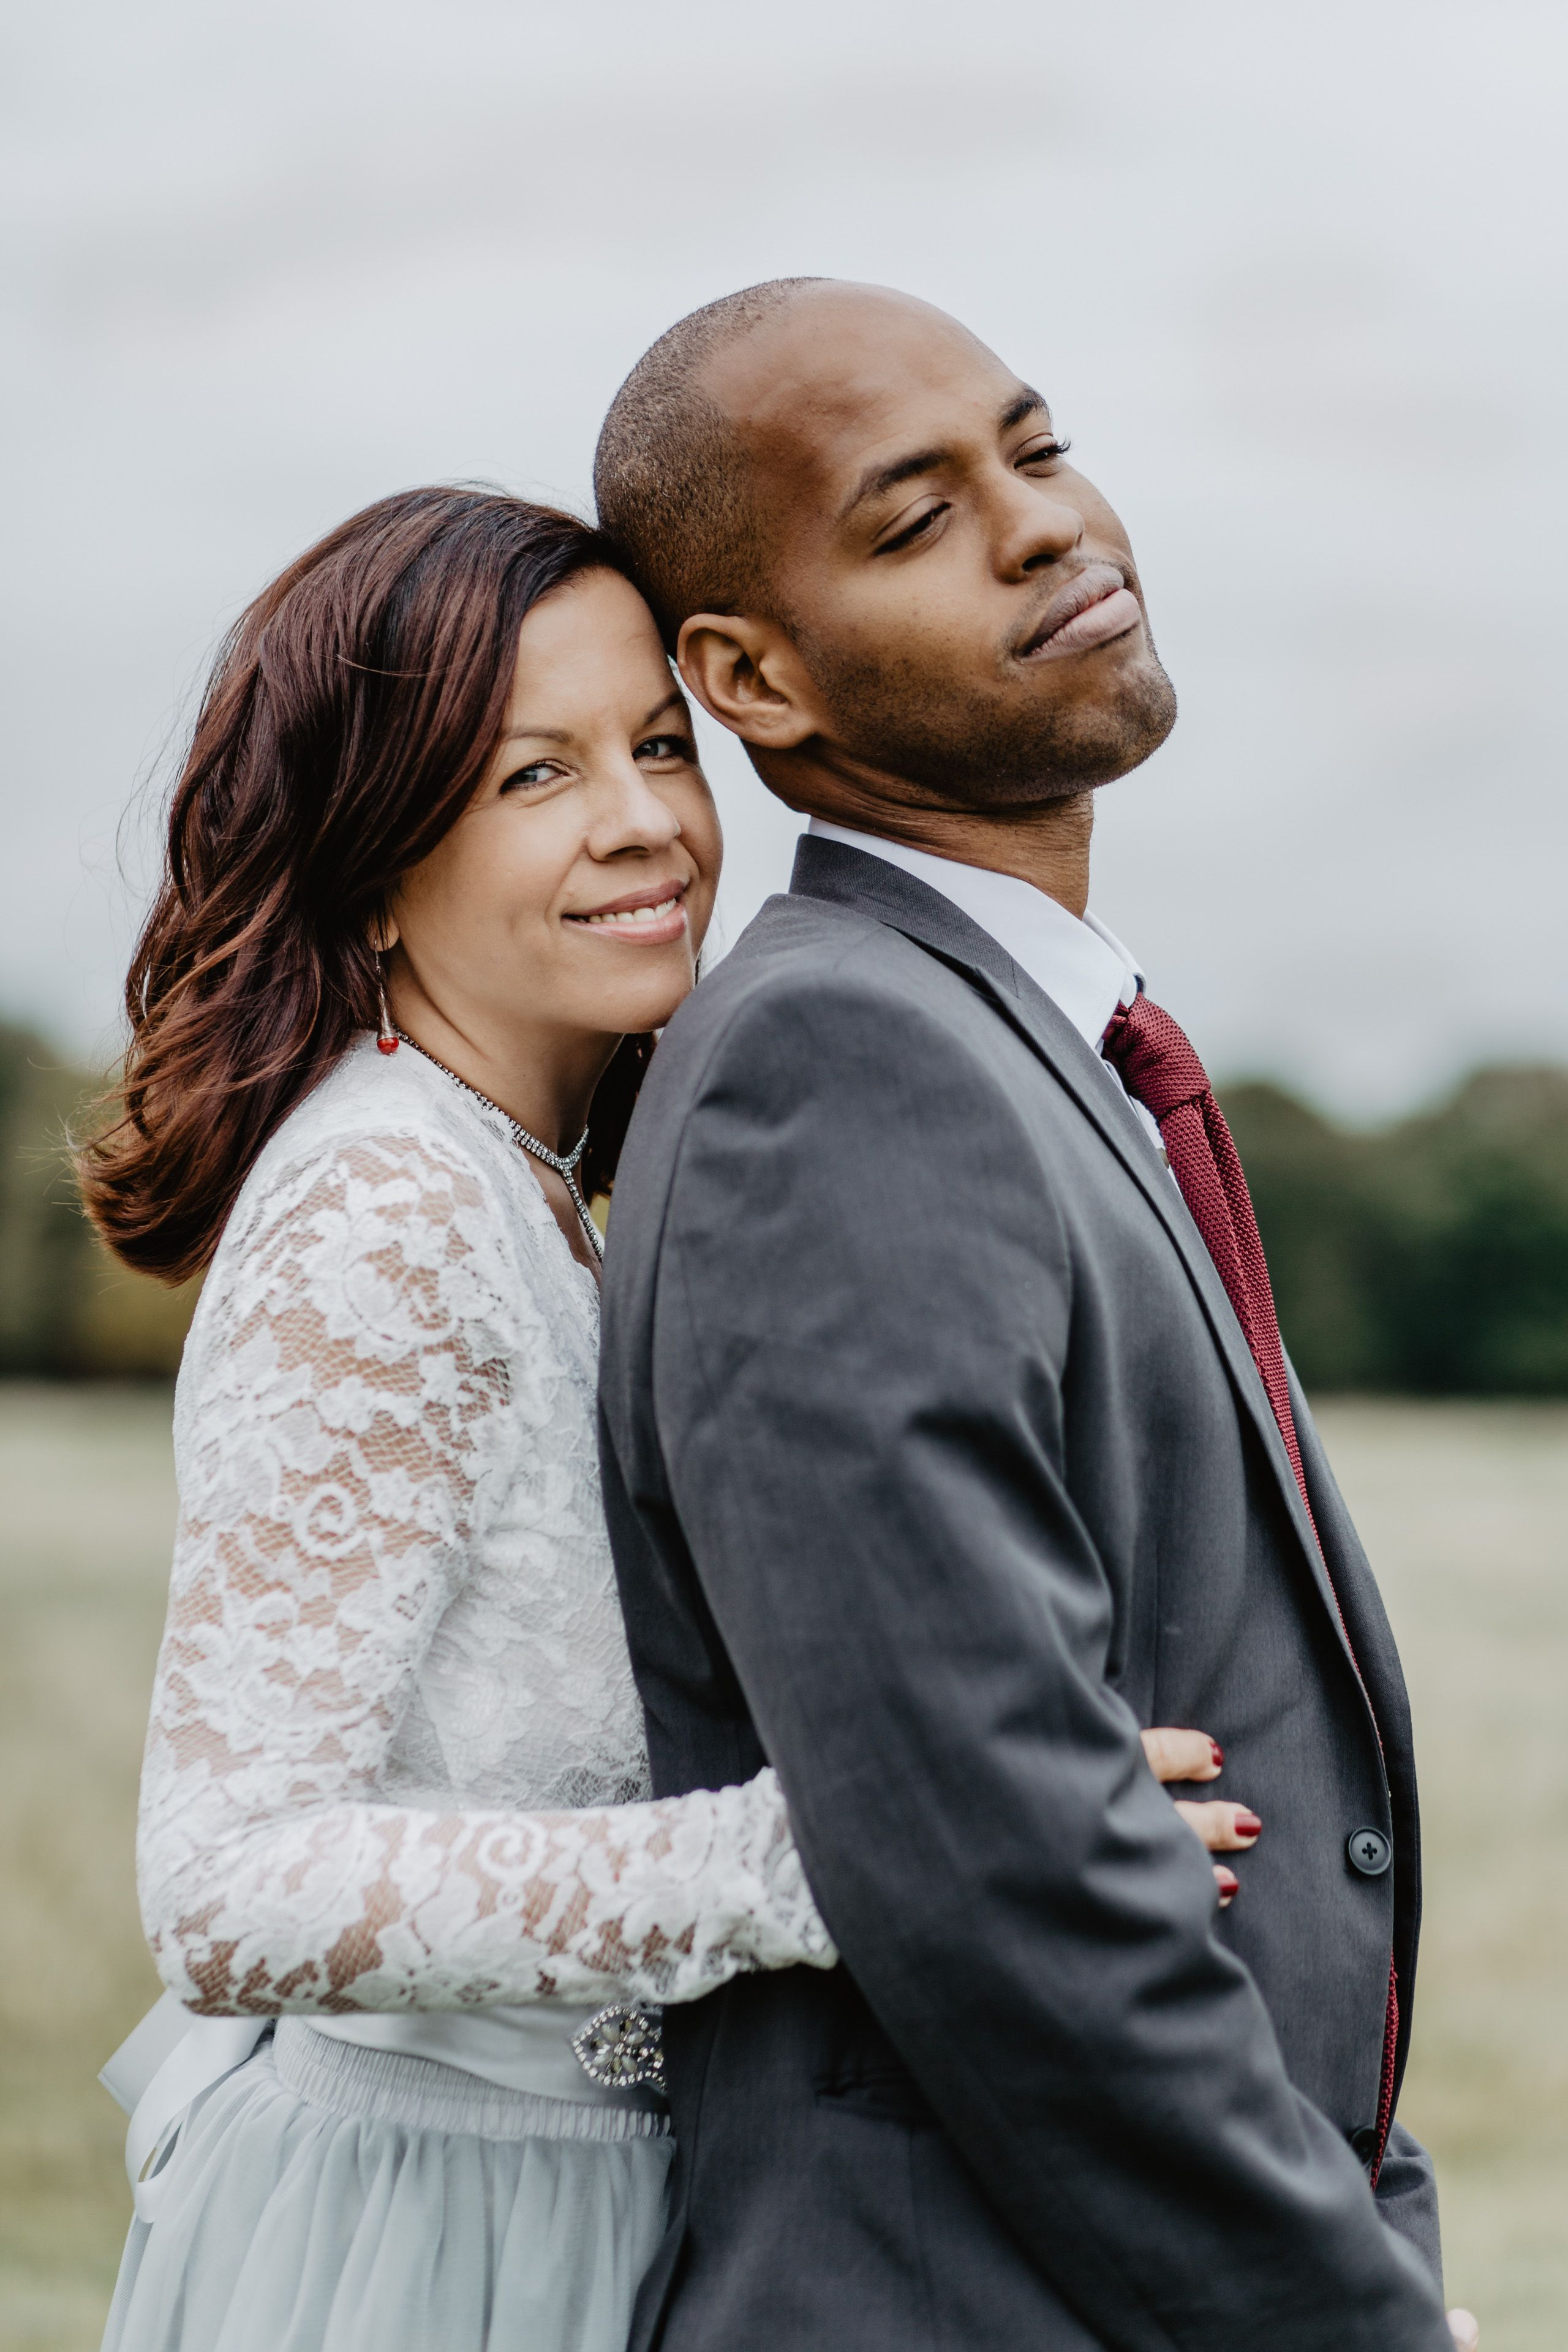 Best wedding dress boutiques in london  Beautiful outdoors elopement in Richmond London England Loved the